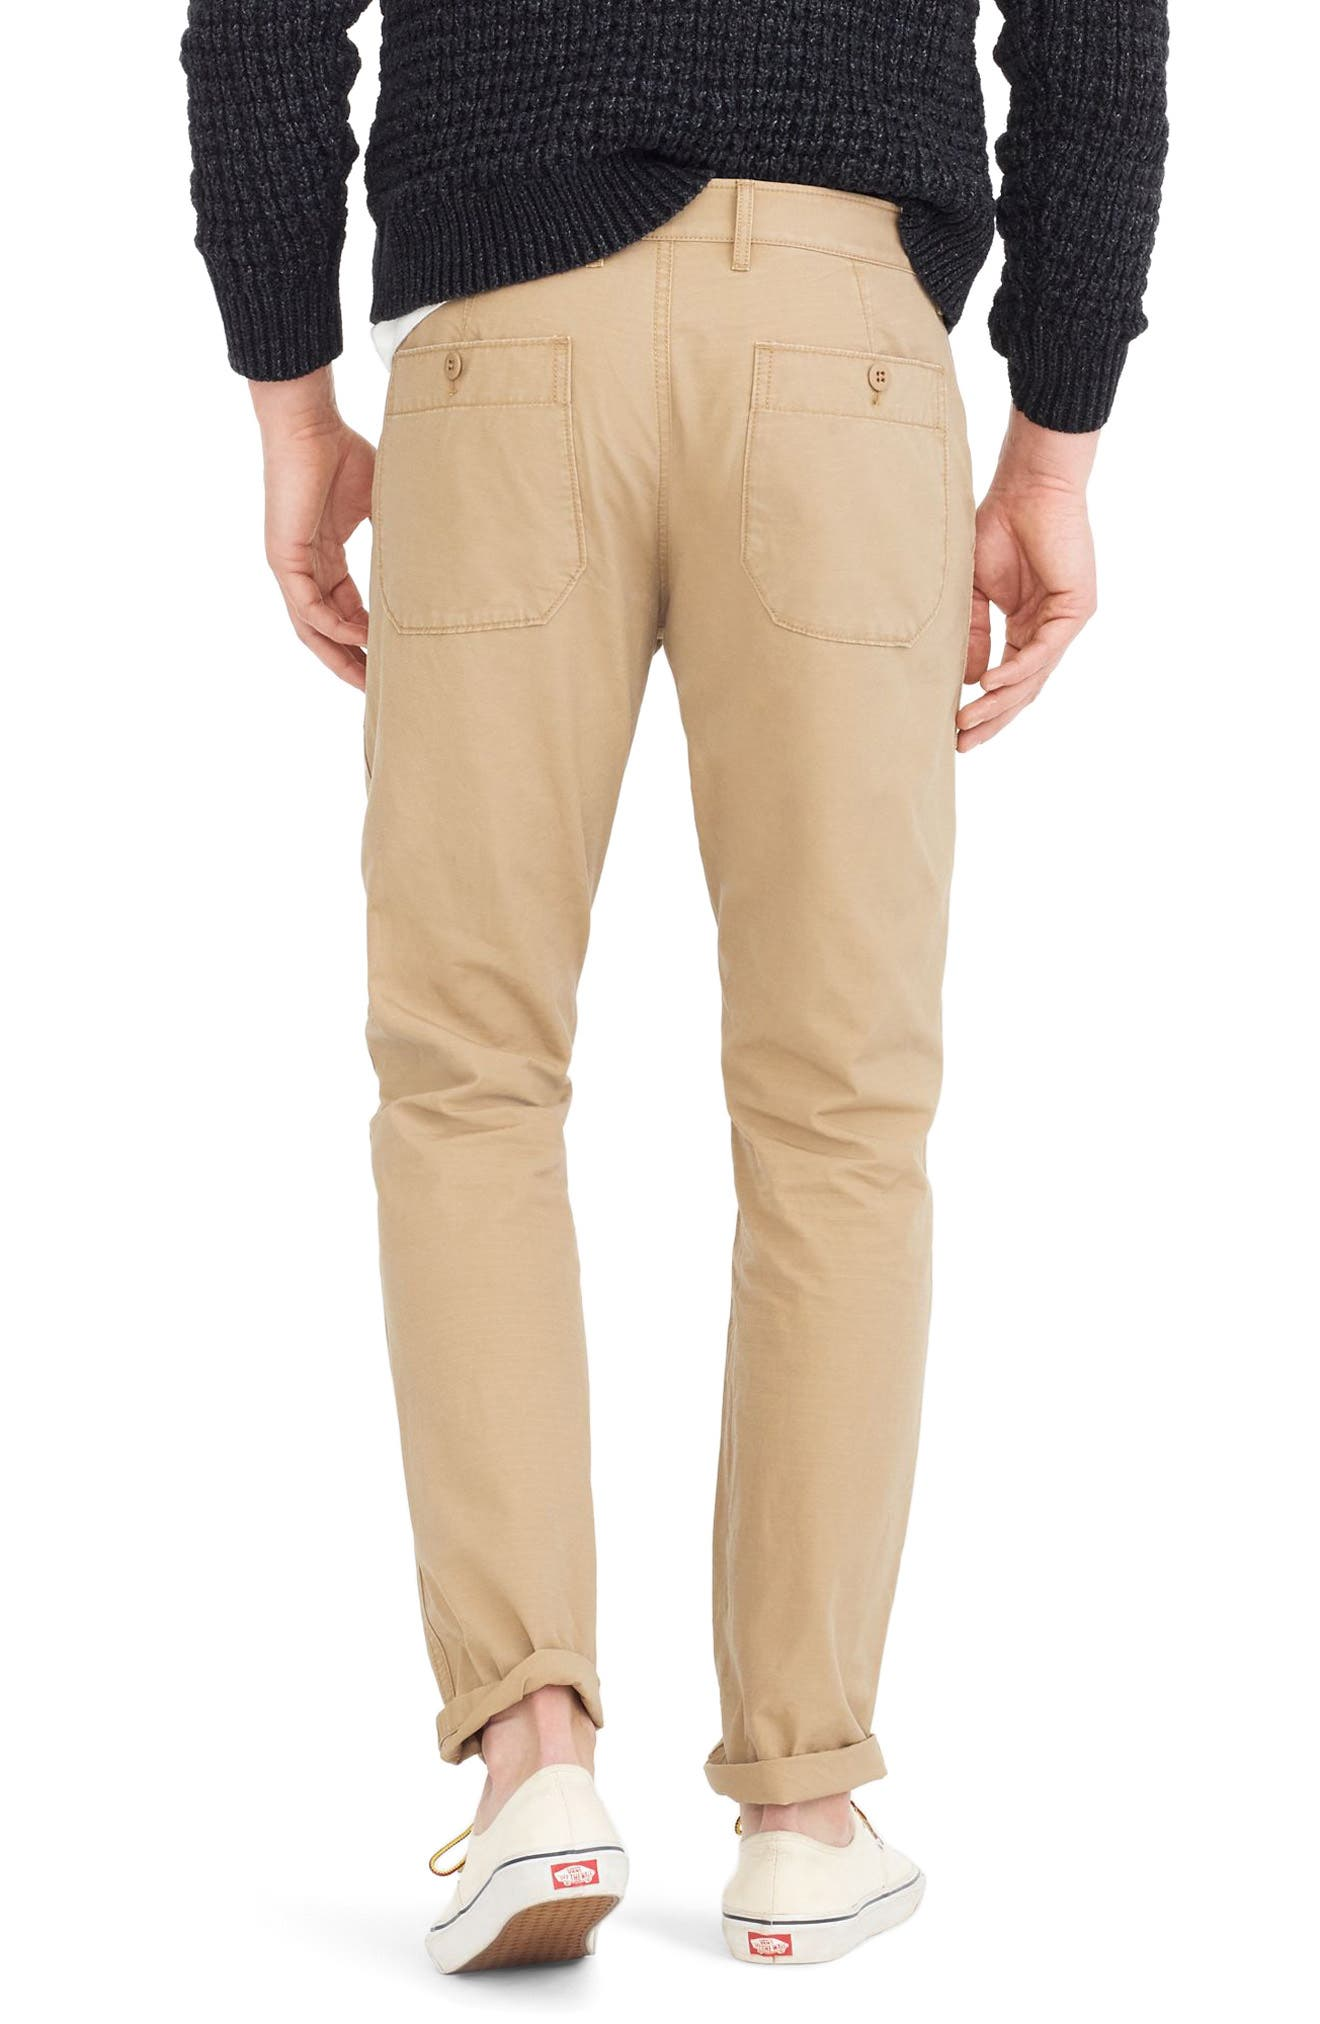 770 Straight Fit Ripstop Camp Pants,                             Alternate thumbnail 2, color,                             250